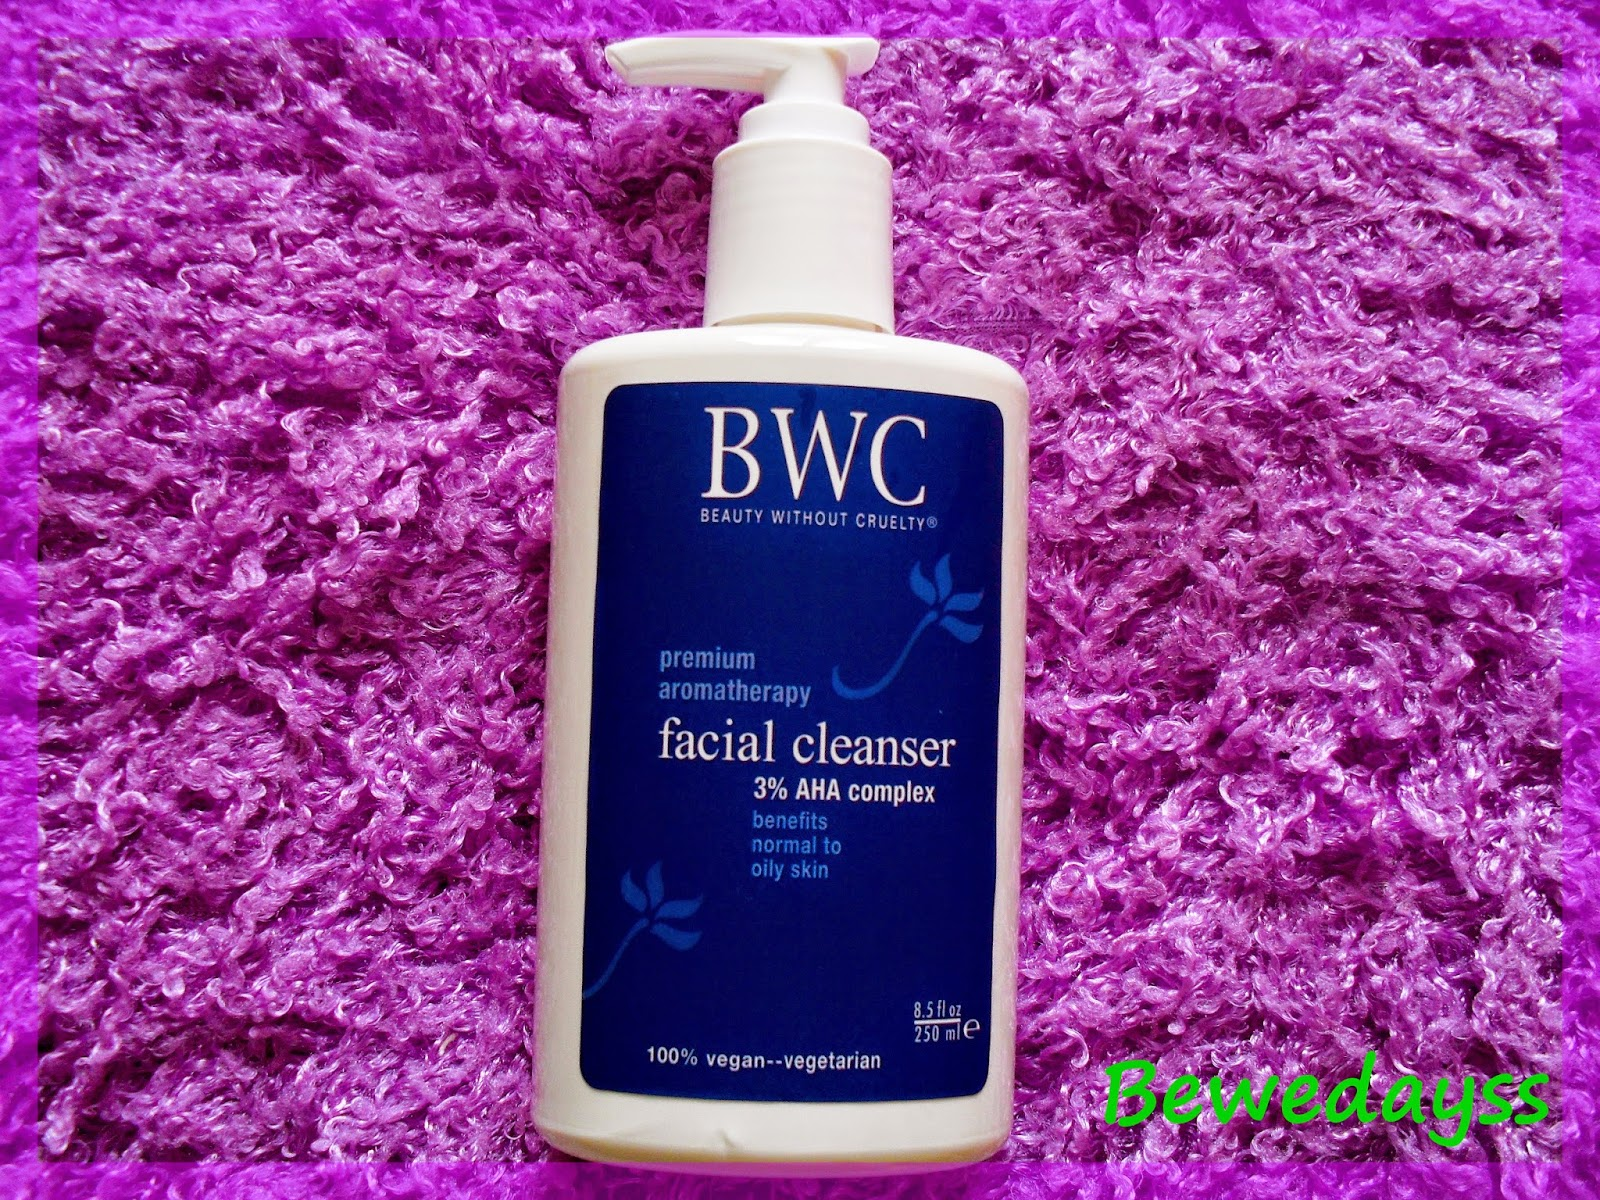 Beauty Without Cruelty, Facial Cleanser, 3% AHA Complex